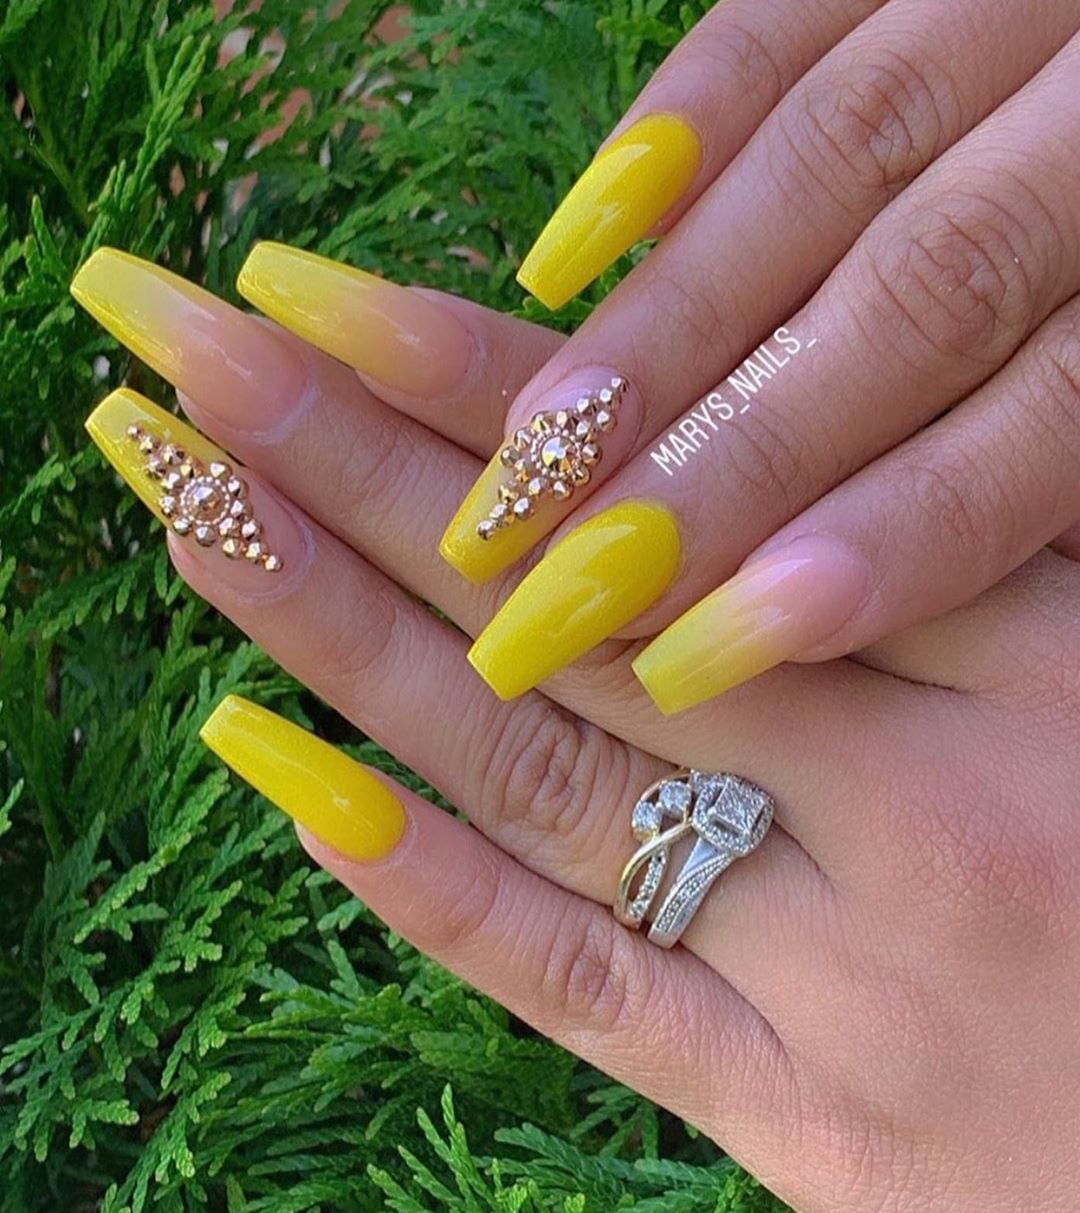 Sunny Days.. Are you a night owl or an early bird?: @marys_nails_